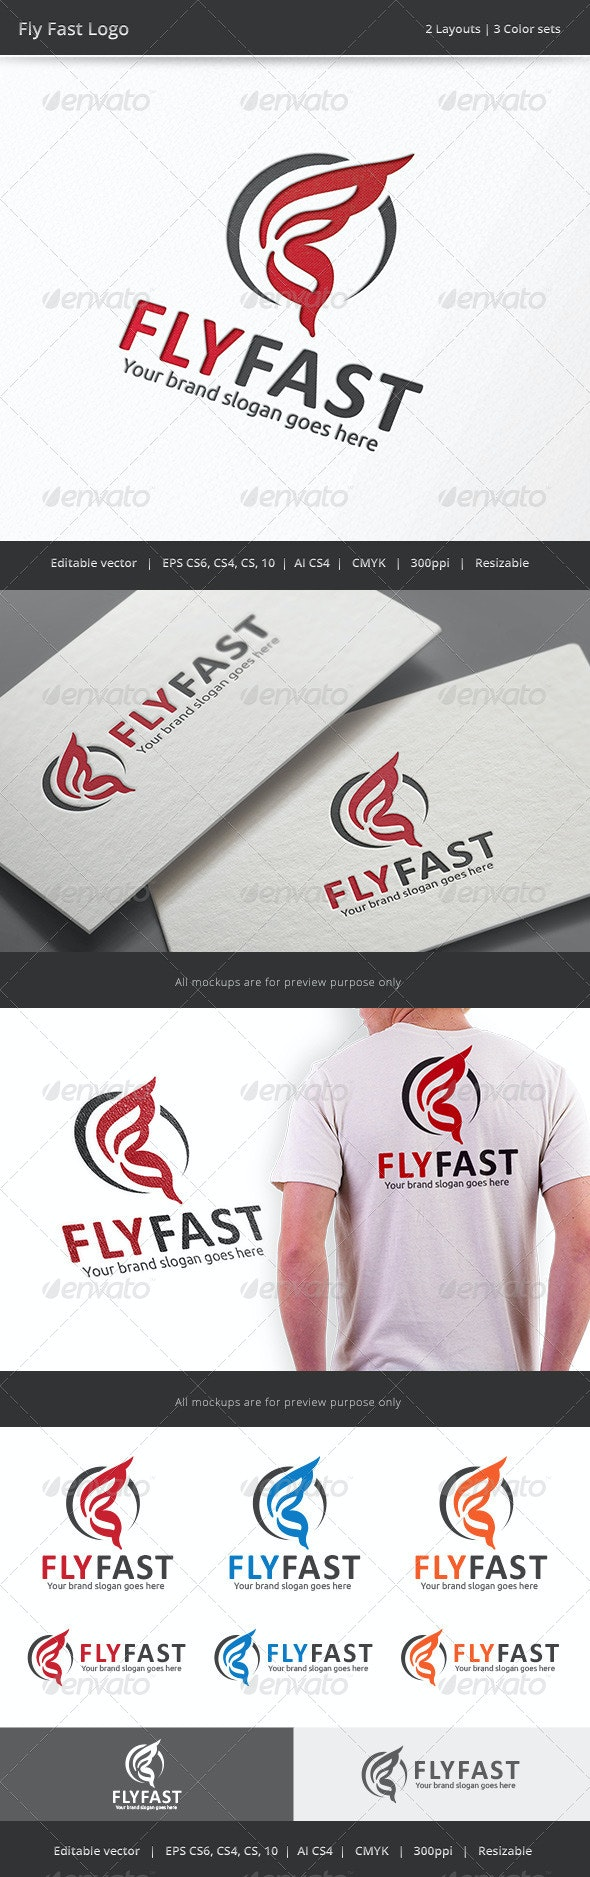 Fly Fast Logo - Vector Abstract